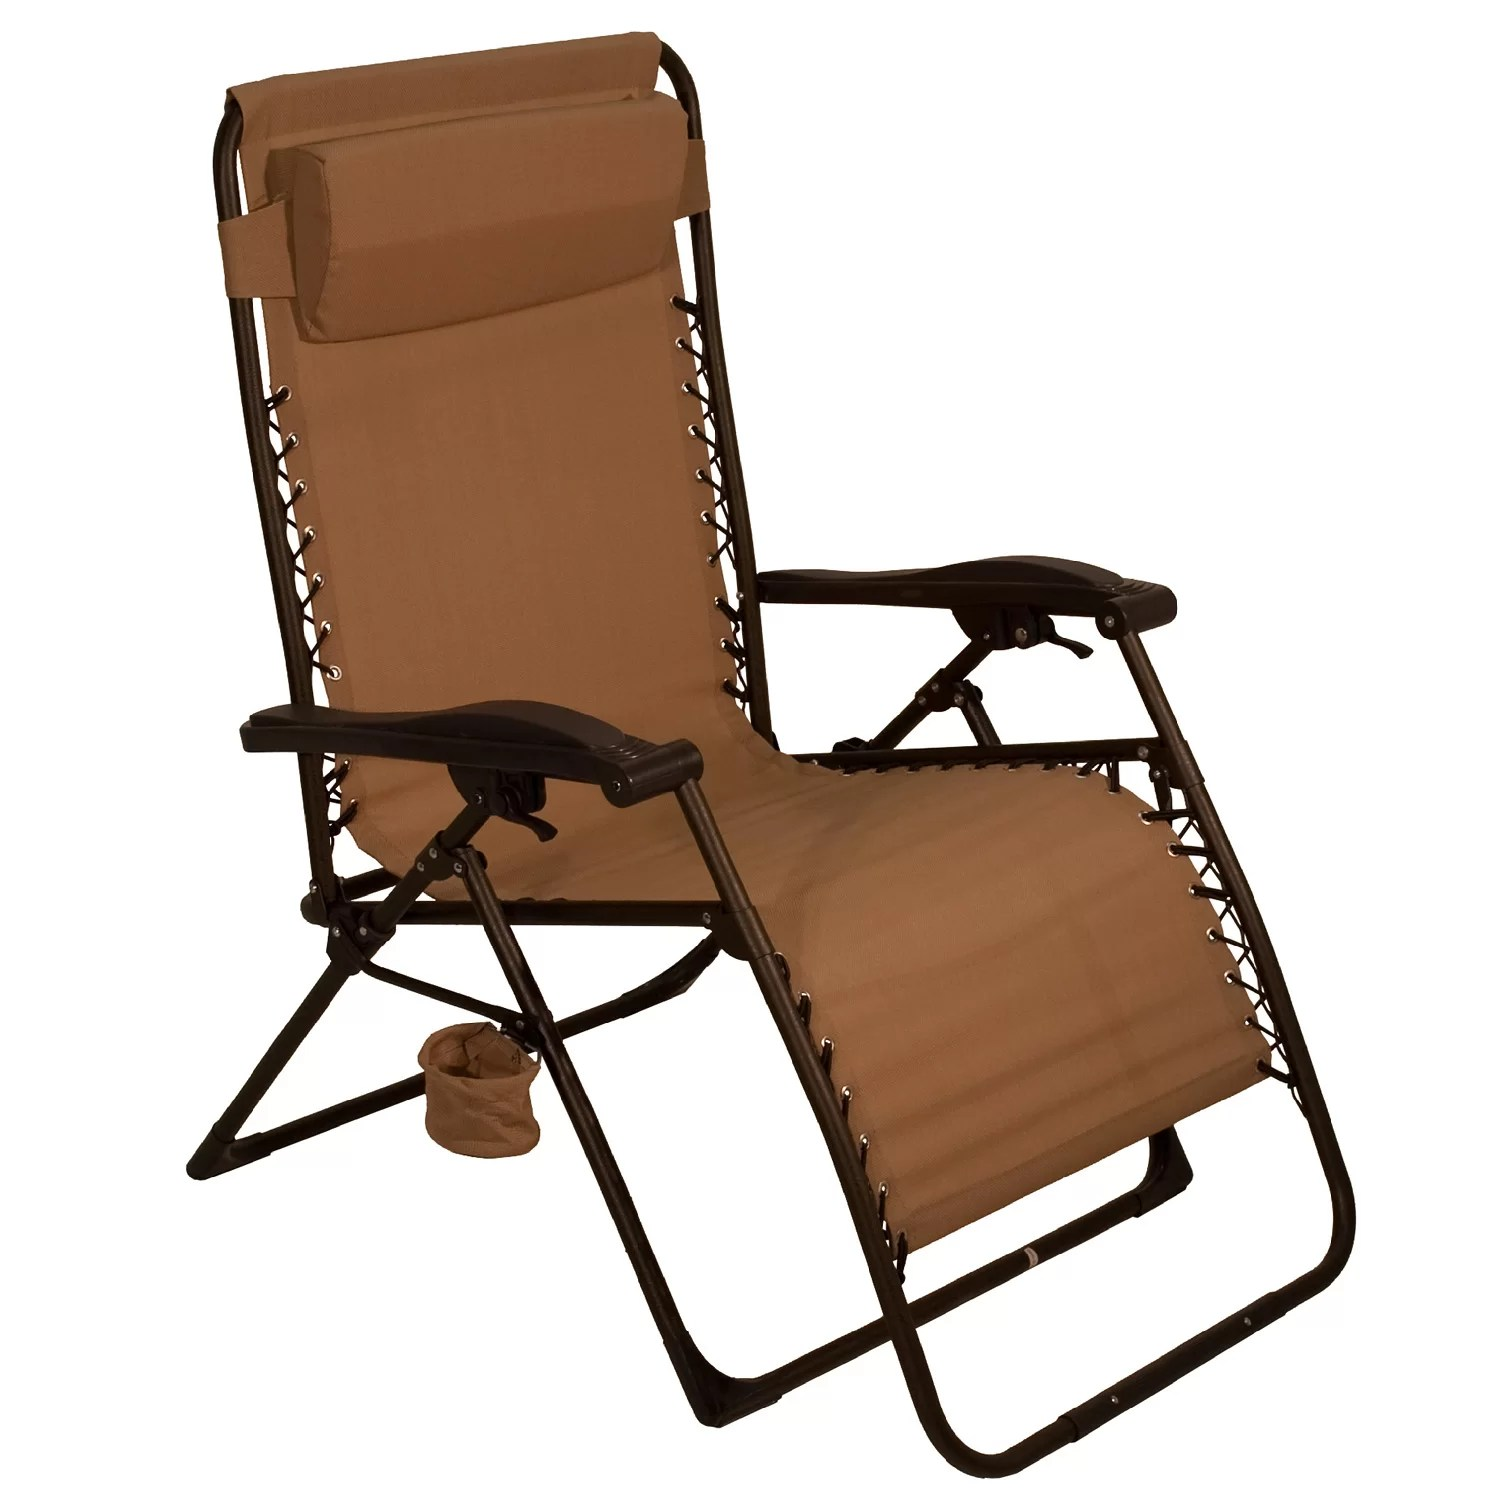 Aura Outdoor Products Large Anti Gravity Chair  Reviews